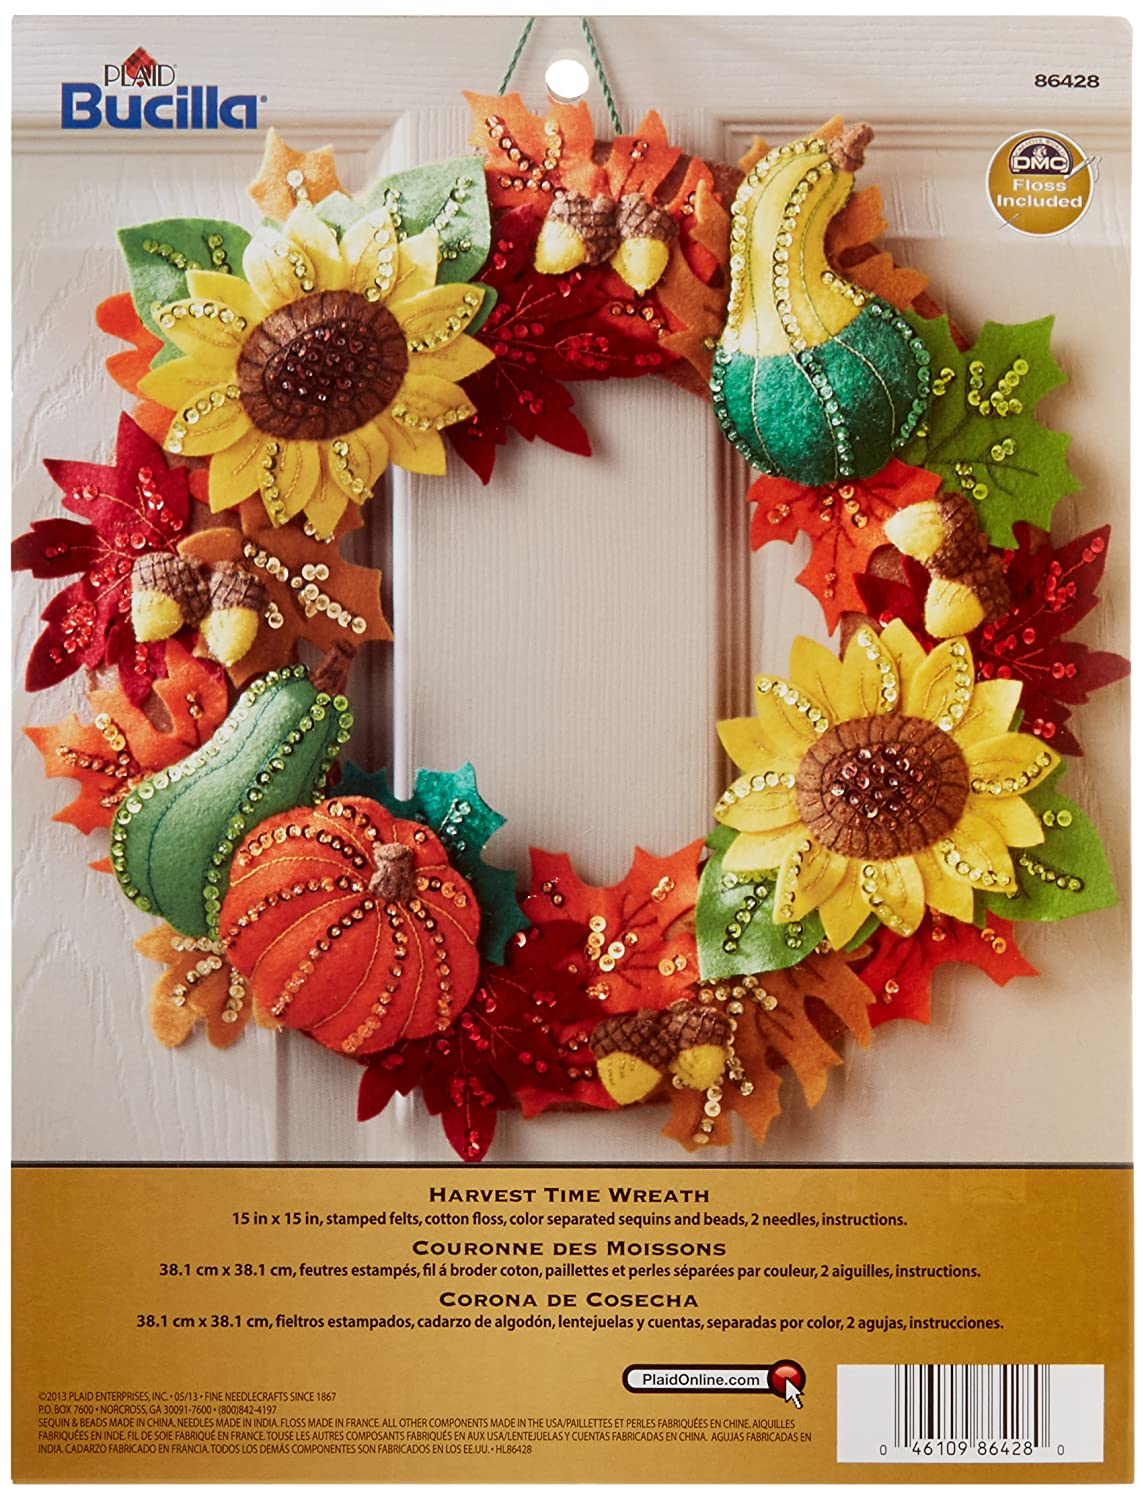 Bucilla felt wreath set for the Fall and Harvest season